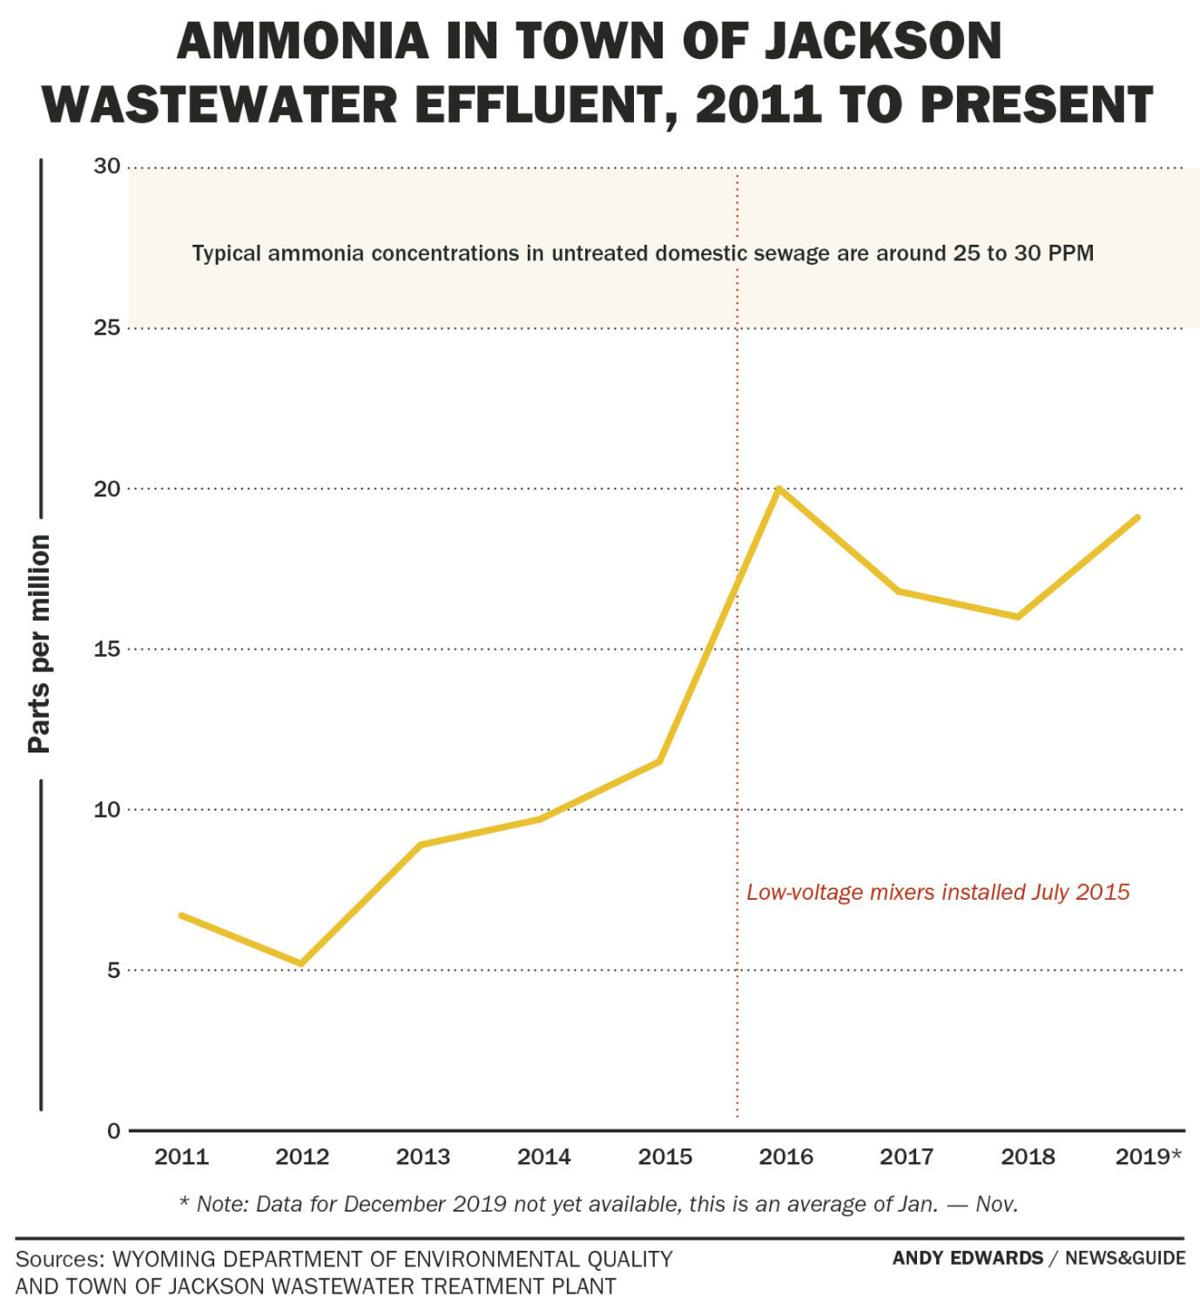 Ammonia in Town of Jackson wastewater effluent, 2011 to present